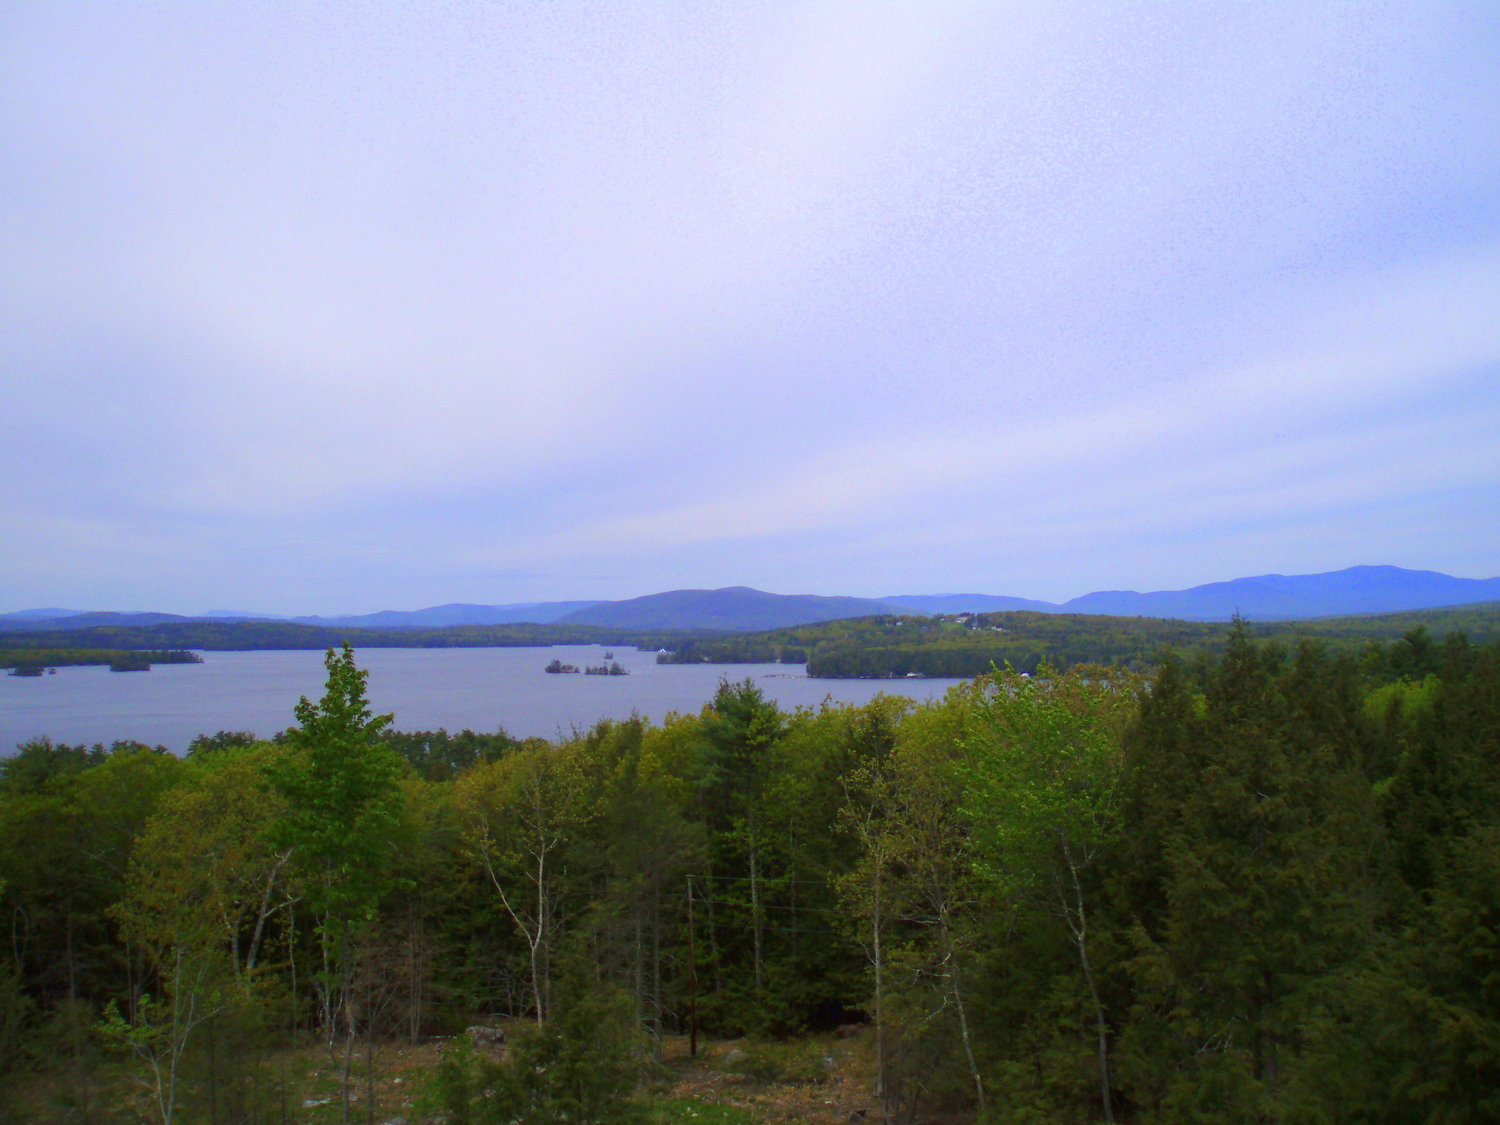 The lake view from atop the tower.